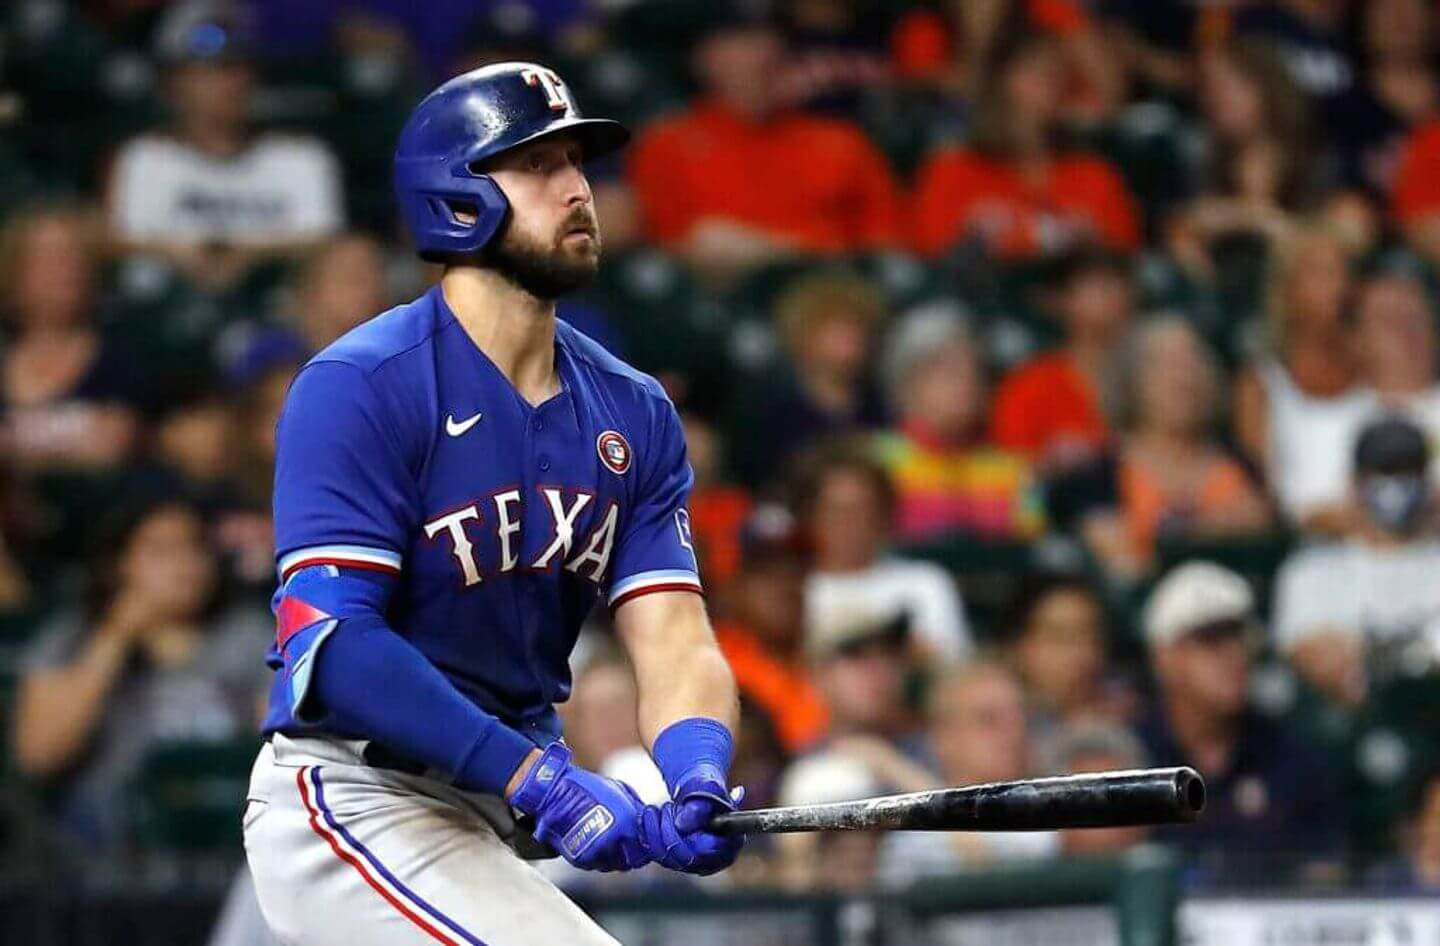 MLB Home Run Derby: heure, comment regarder, chaîne, streaming, support, format